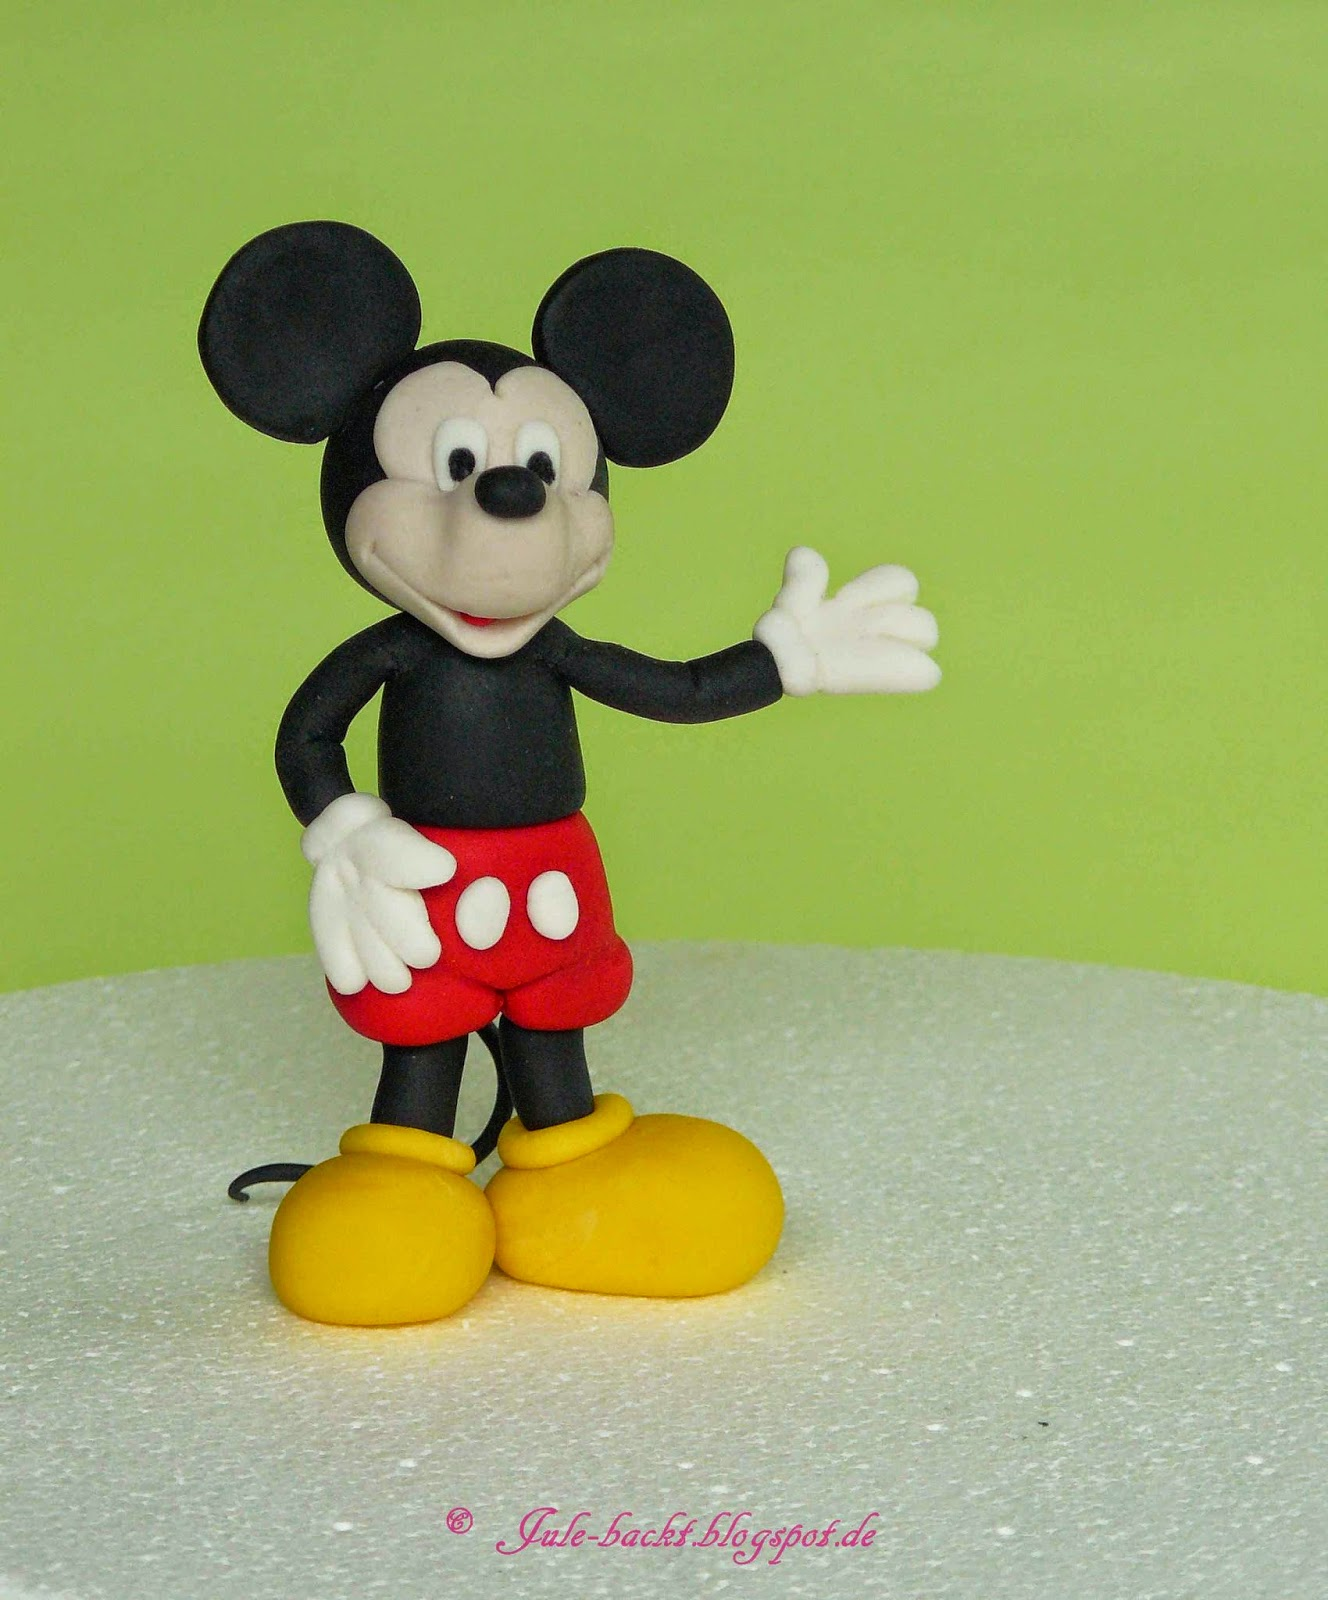 http://jule-backt.blogspot.de/2014/10/tutorial-caketopper-mickey-mouse-teil-1.html